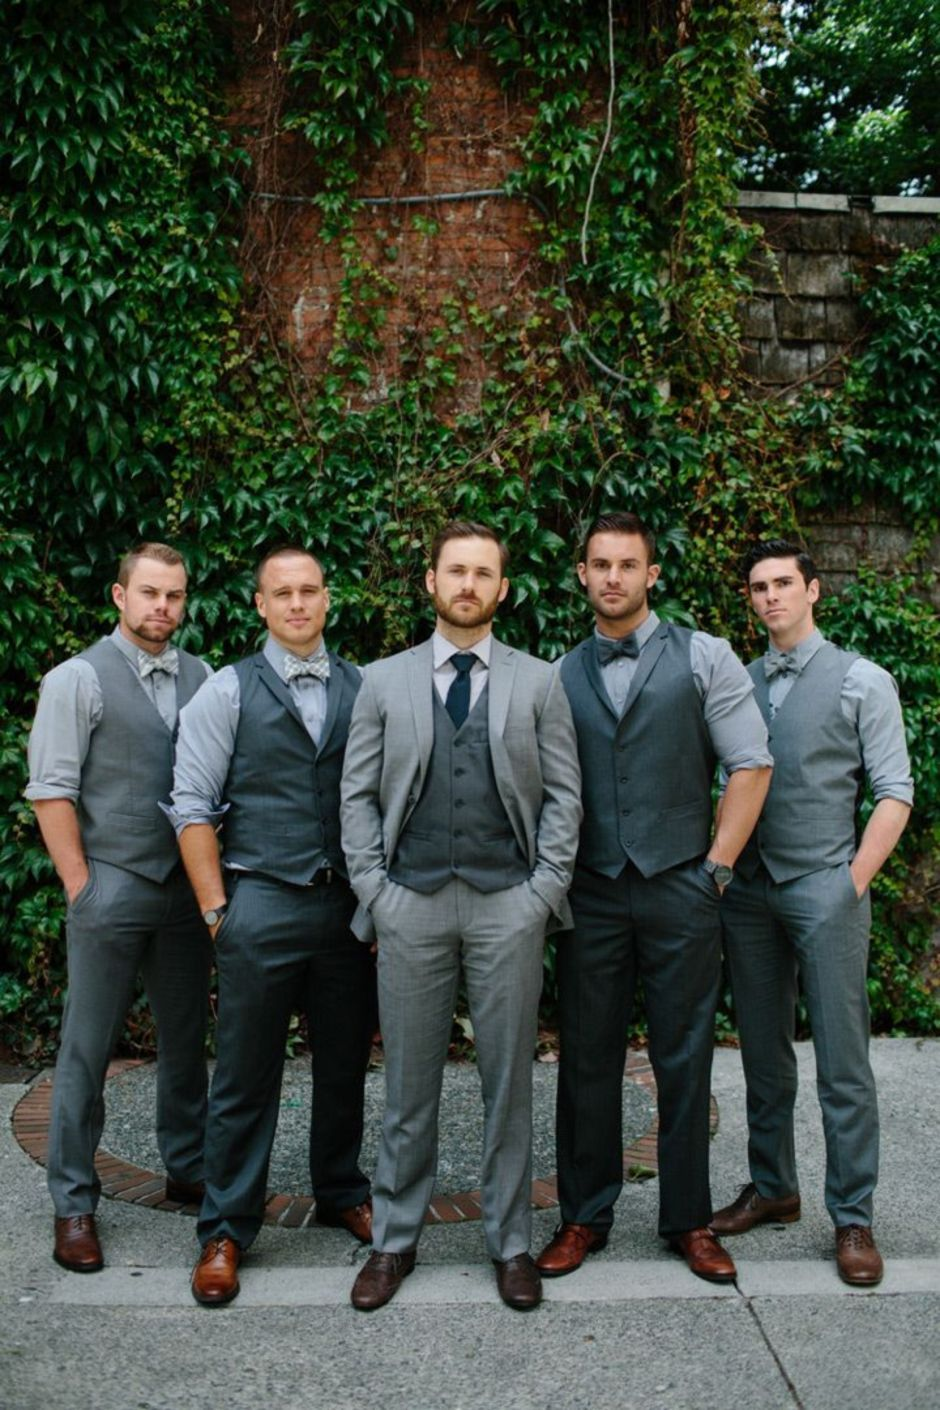 100+ Groomsmen Photos Poses Ideas You Can't Miss 49